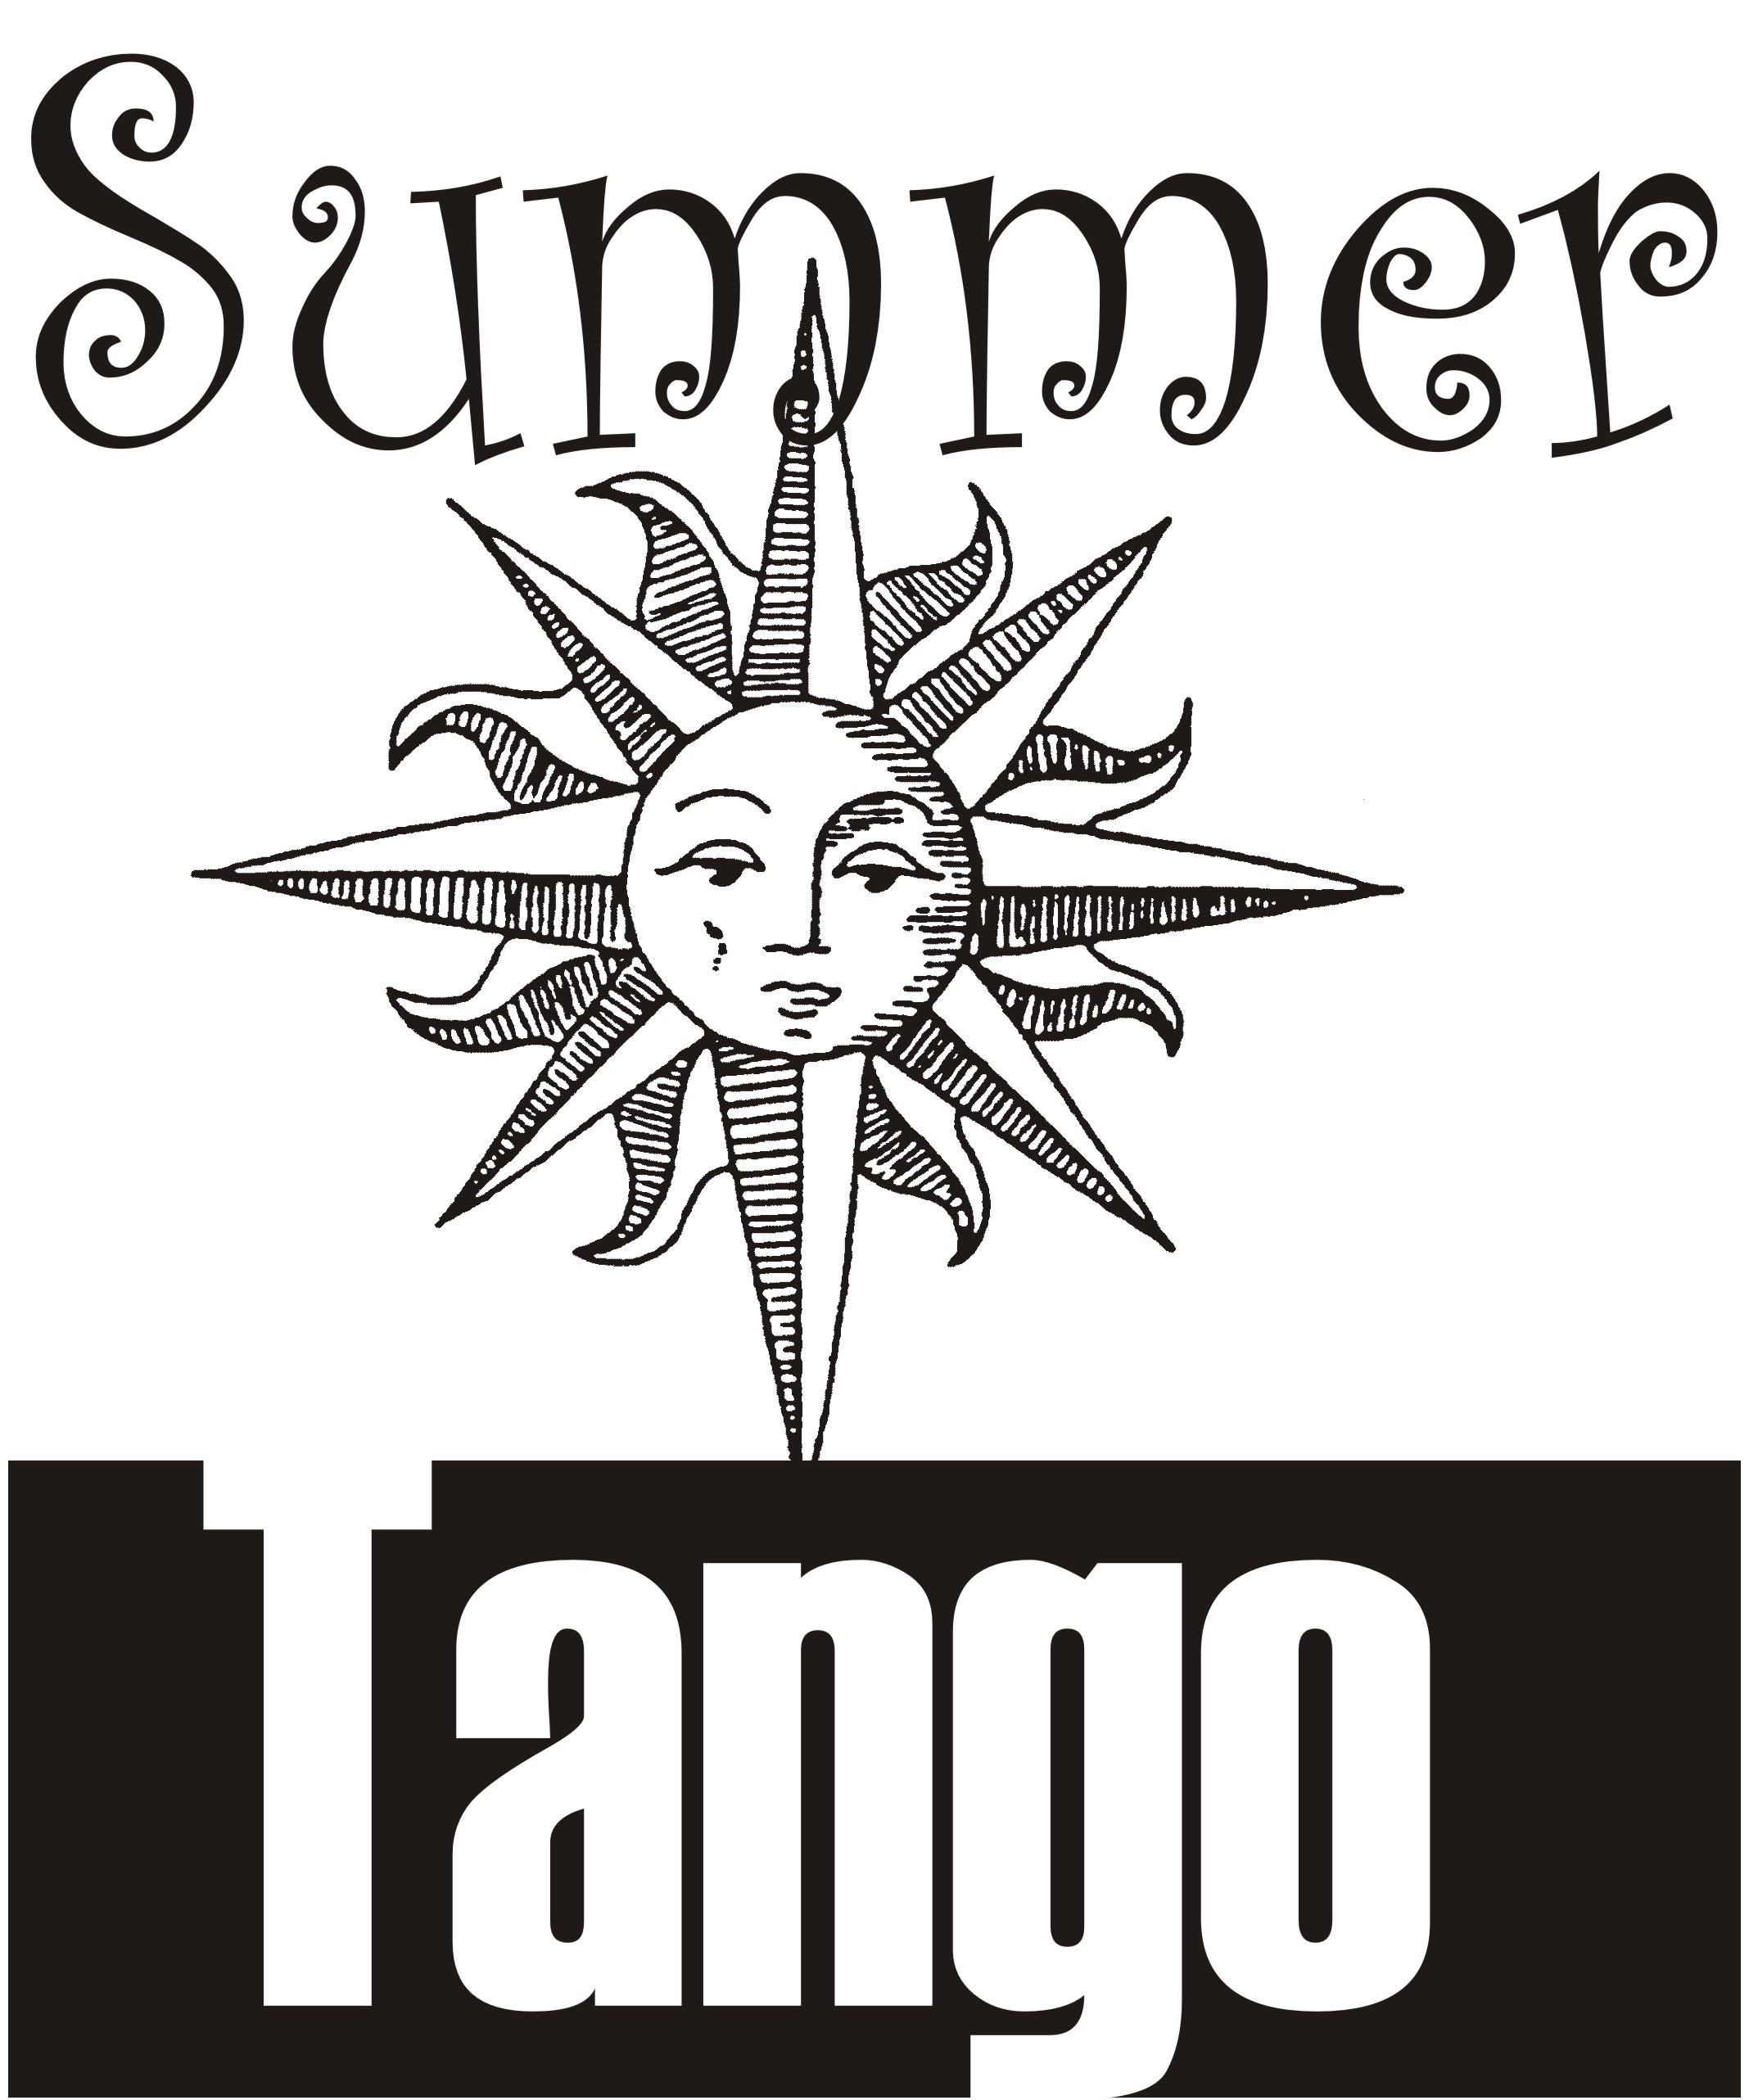 summertango+logo+fb.jpg